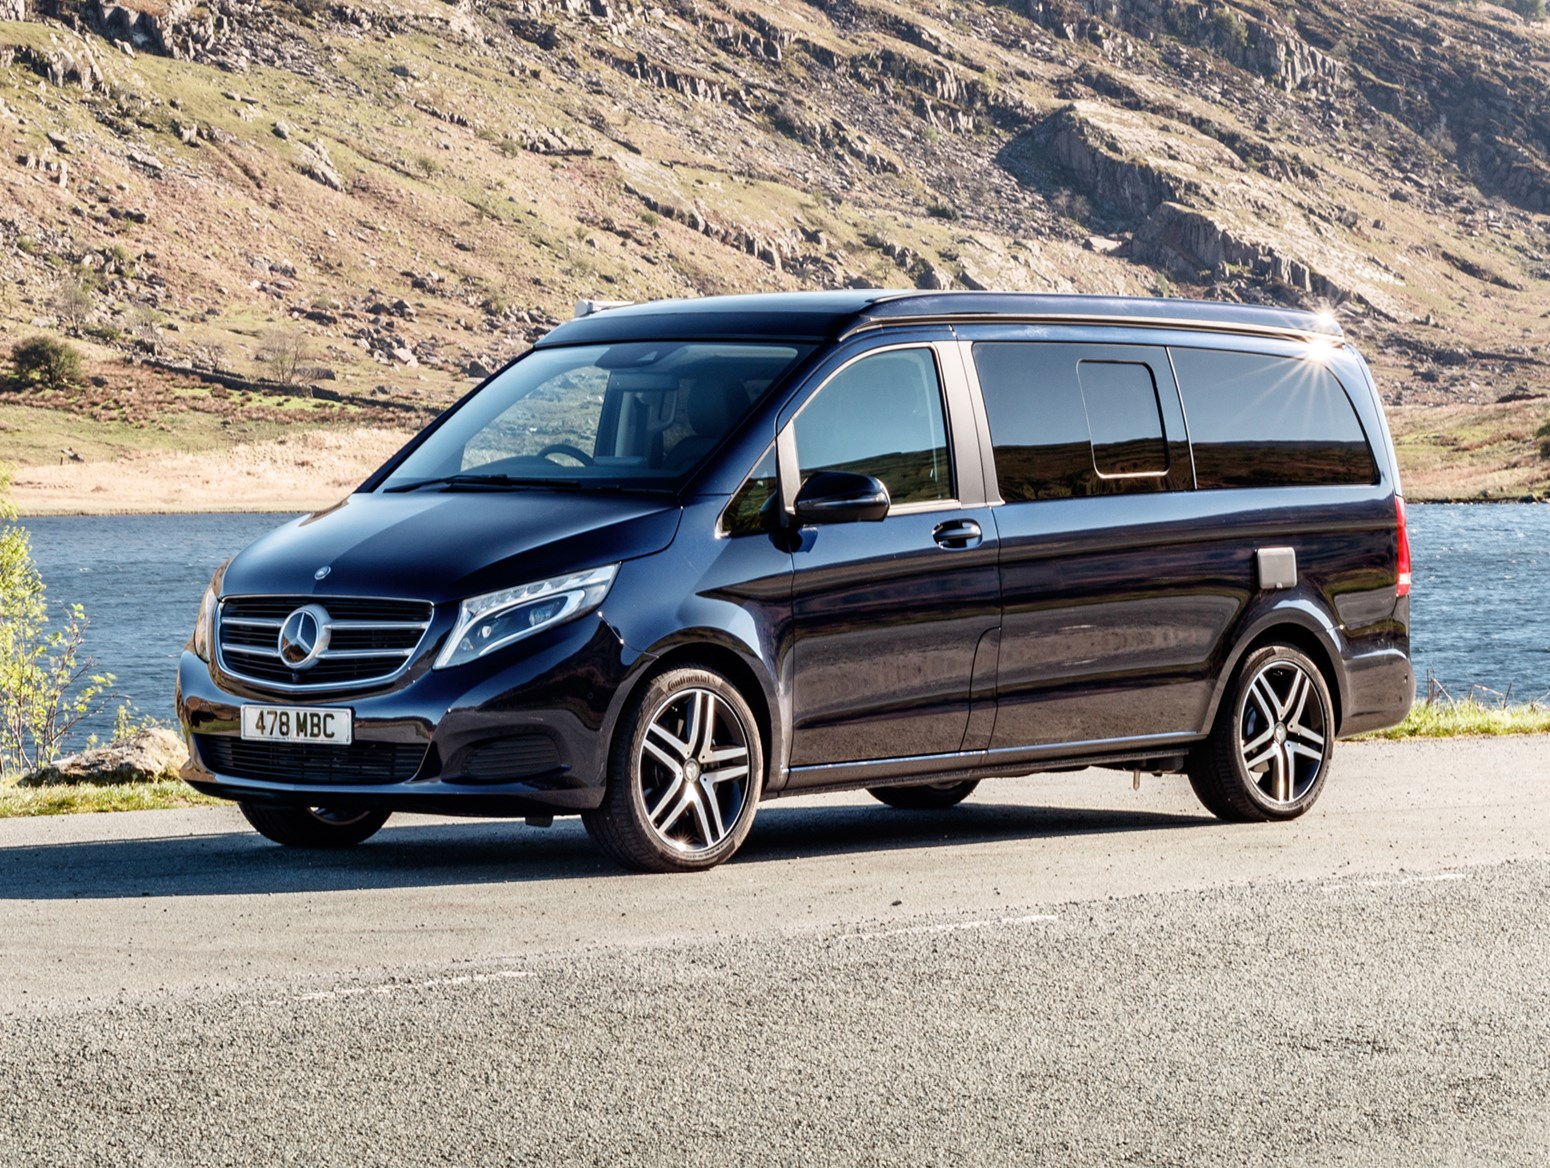 Mercedes benz v class marco polo review parkers for Mercedes benz marco polo for sale